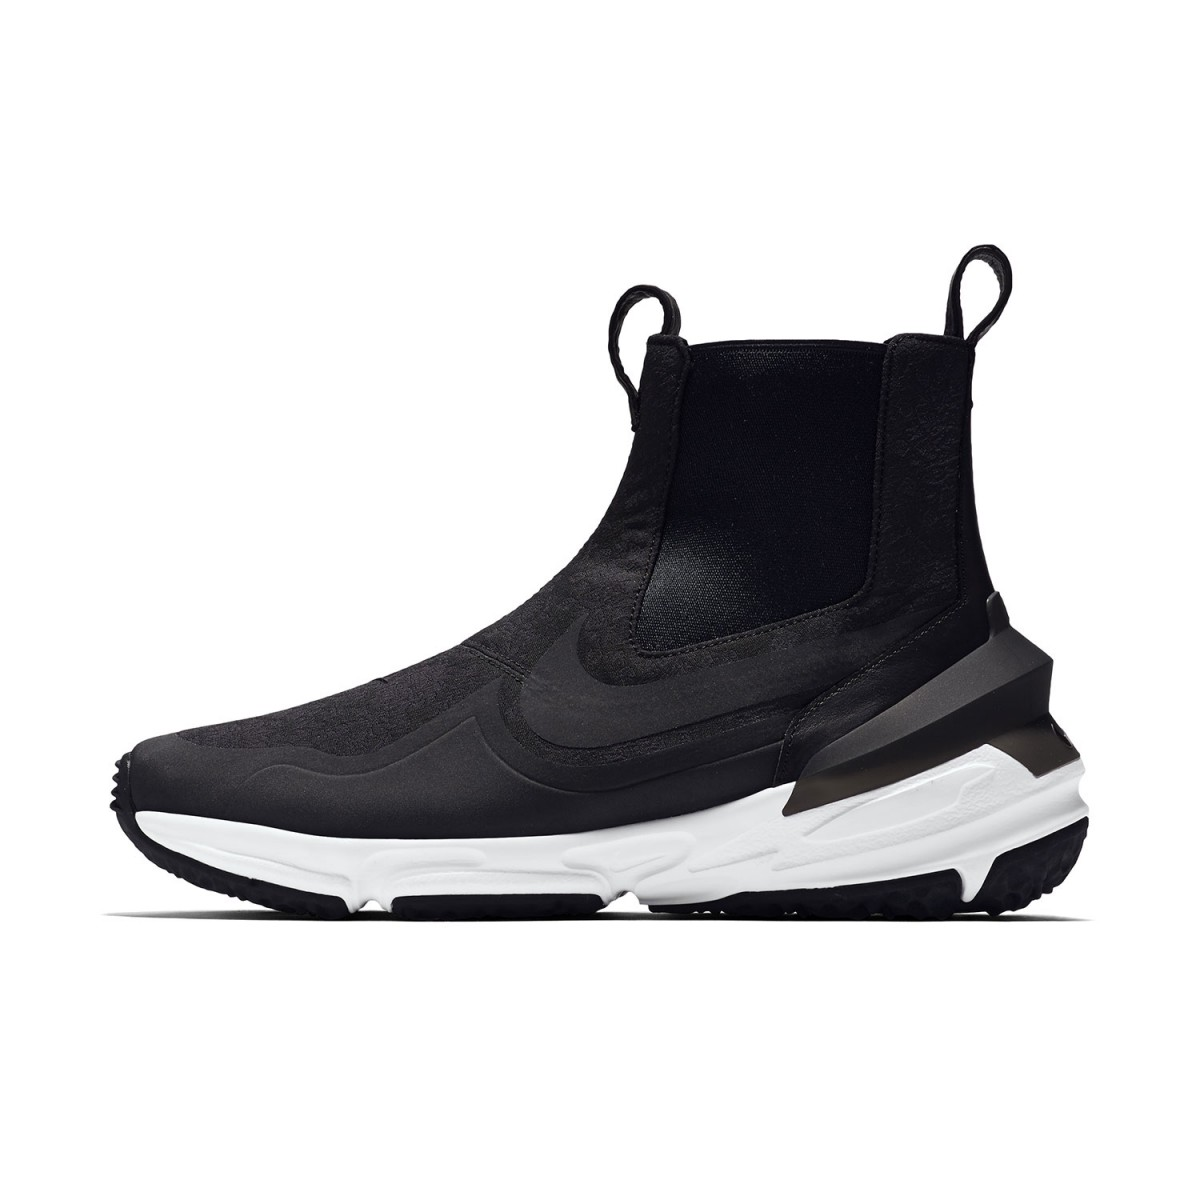 nikelab-air-zoom-legend-riccardo-tisci-3-1200x1200